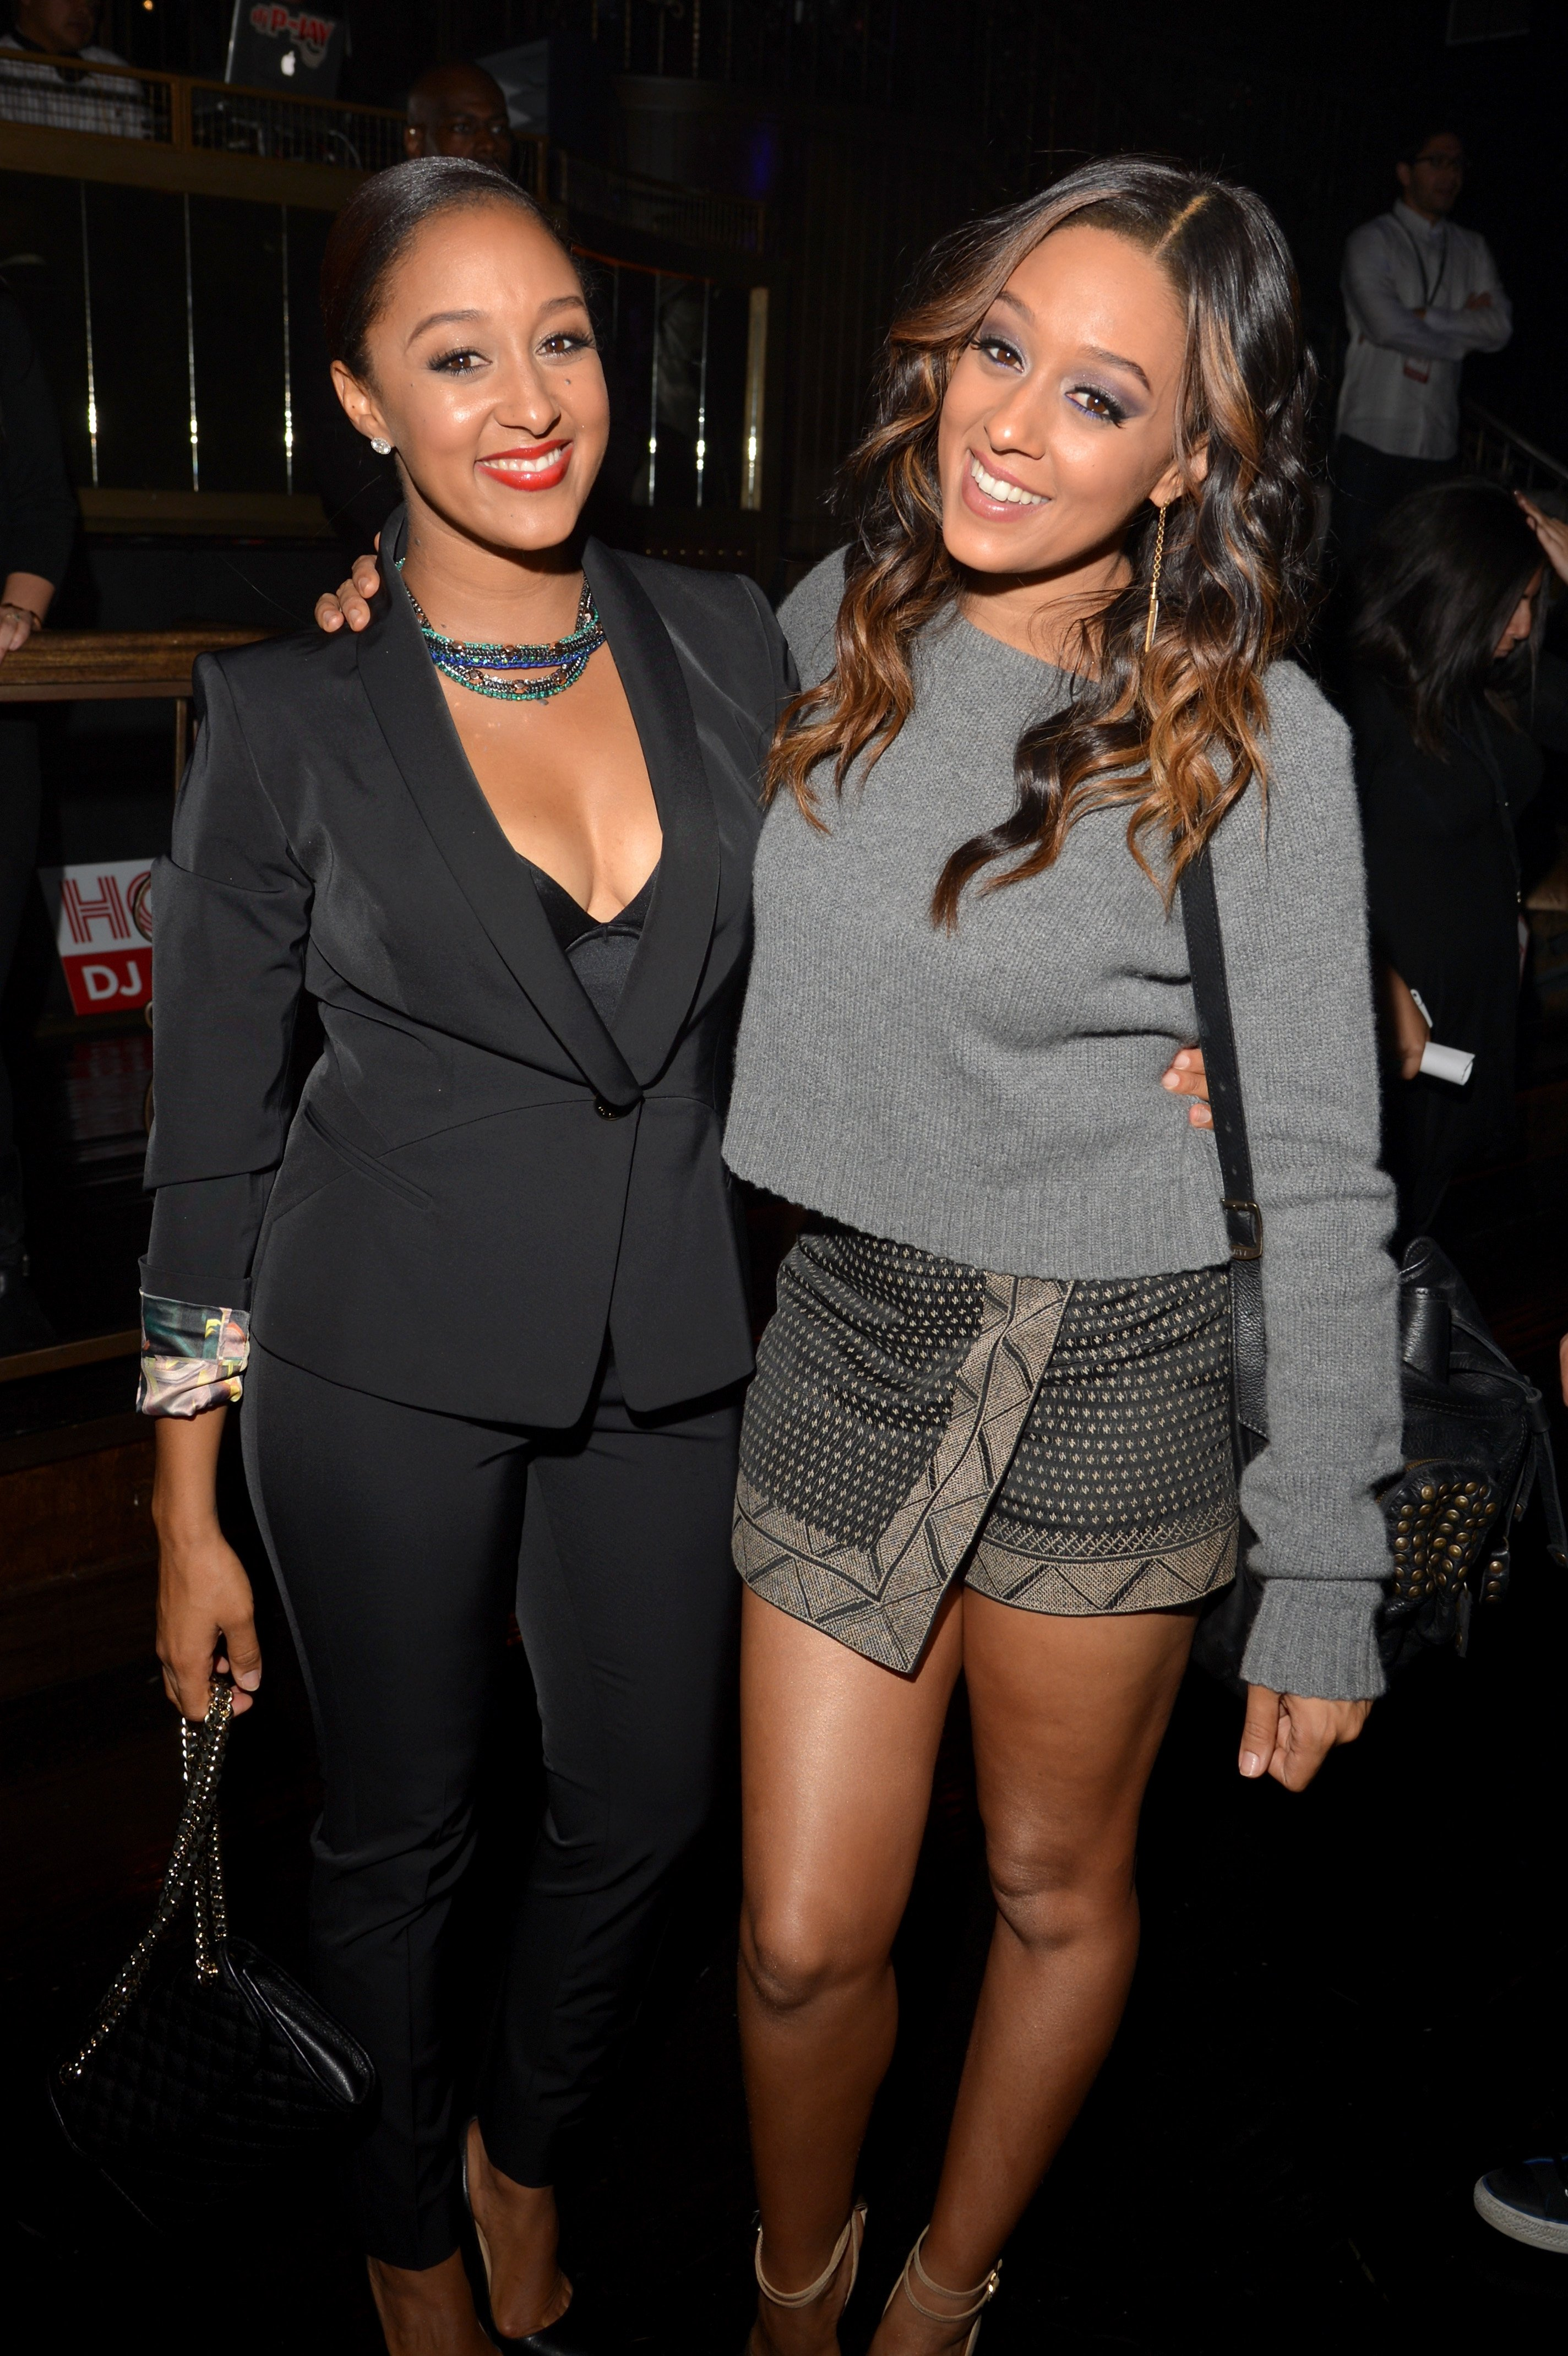 Tamera Mowry-Housley and Tia Mowry-Hardrict at the TV Guide Magazine's Hot List Party on November 4, 2013 l Source: Getty Images